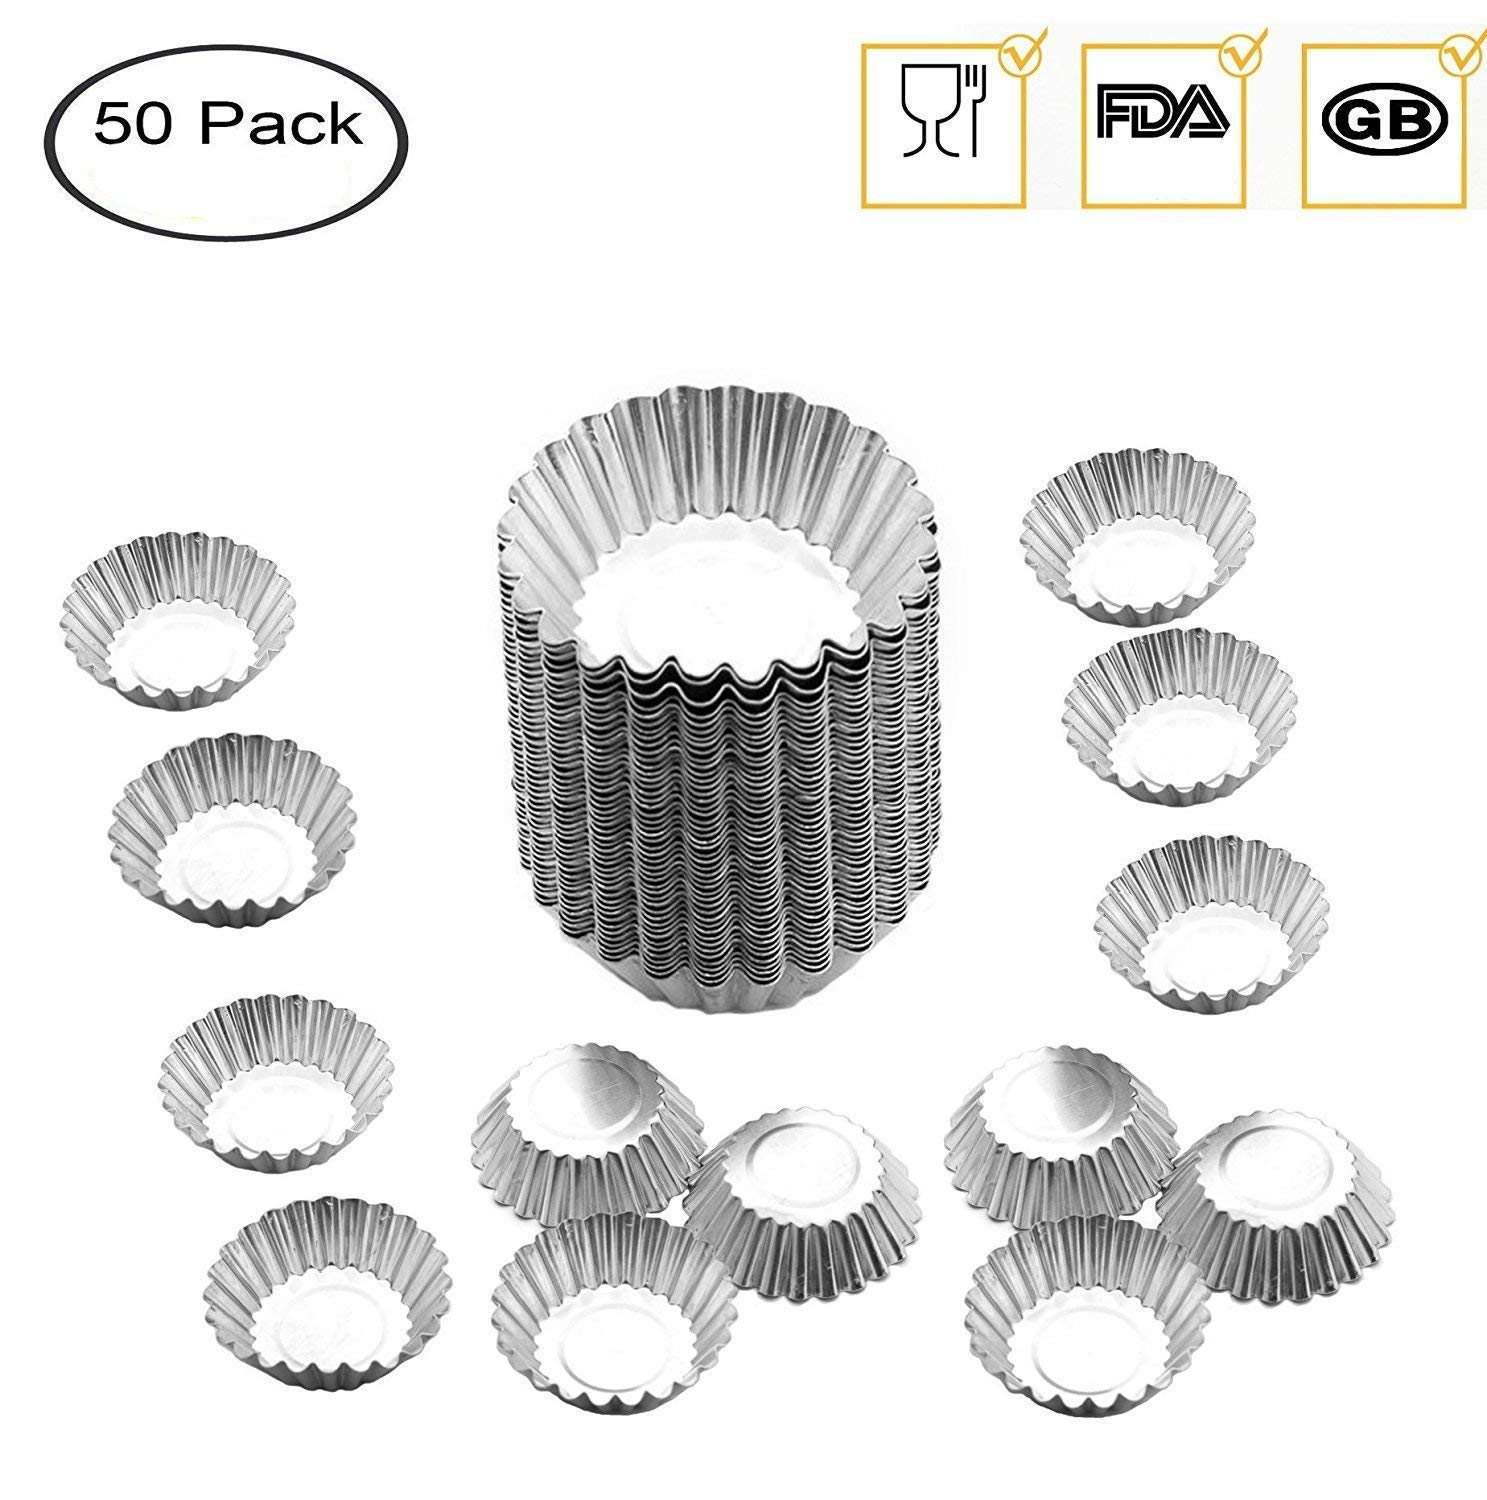 Egg Tart Mold Baking Cups Tins,50pcs Aluminum Mini Pie Pans Muffin Baking Cups Cupcake Cake Cookie Lined Mould Tin Baking Tool fashionclubs